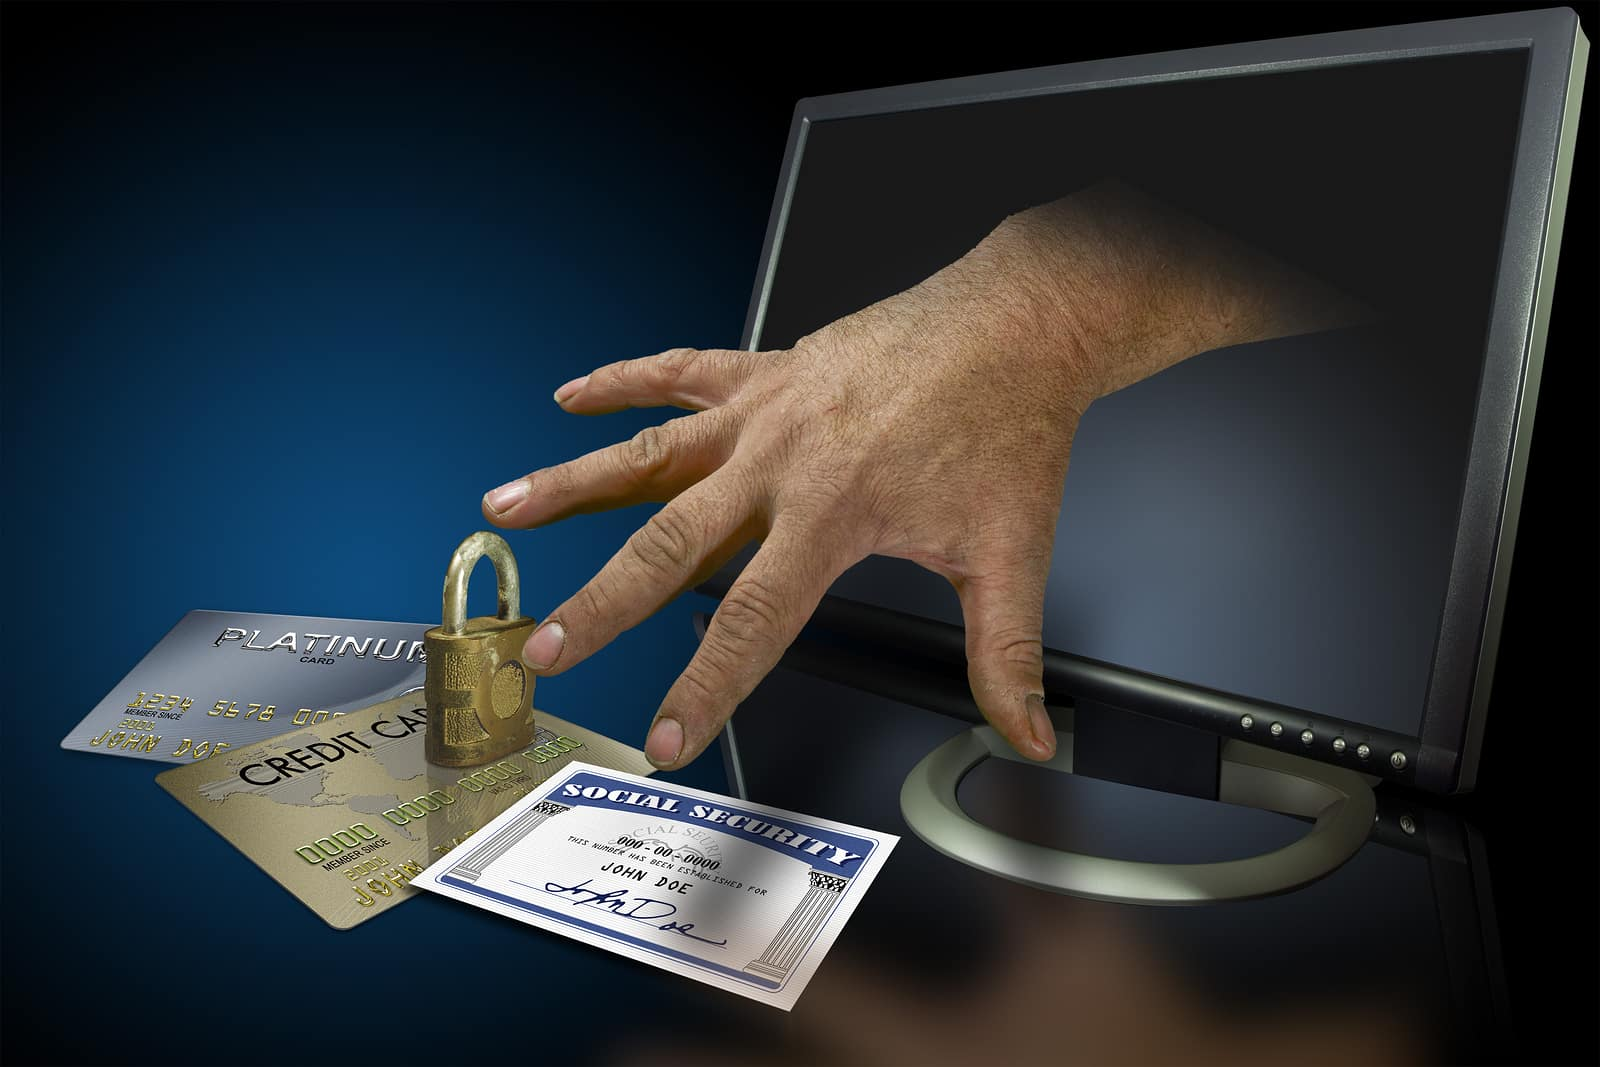 Identity theft on the web with credit cards